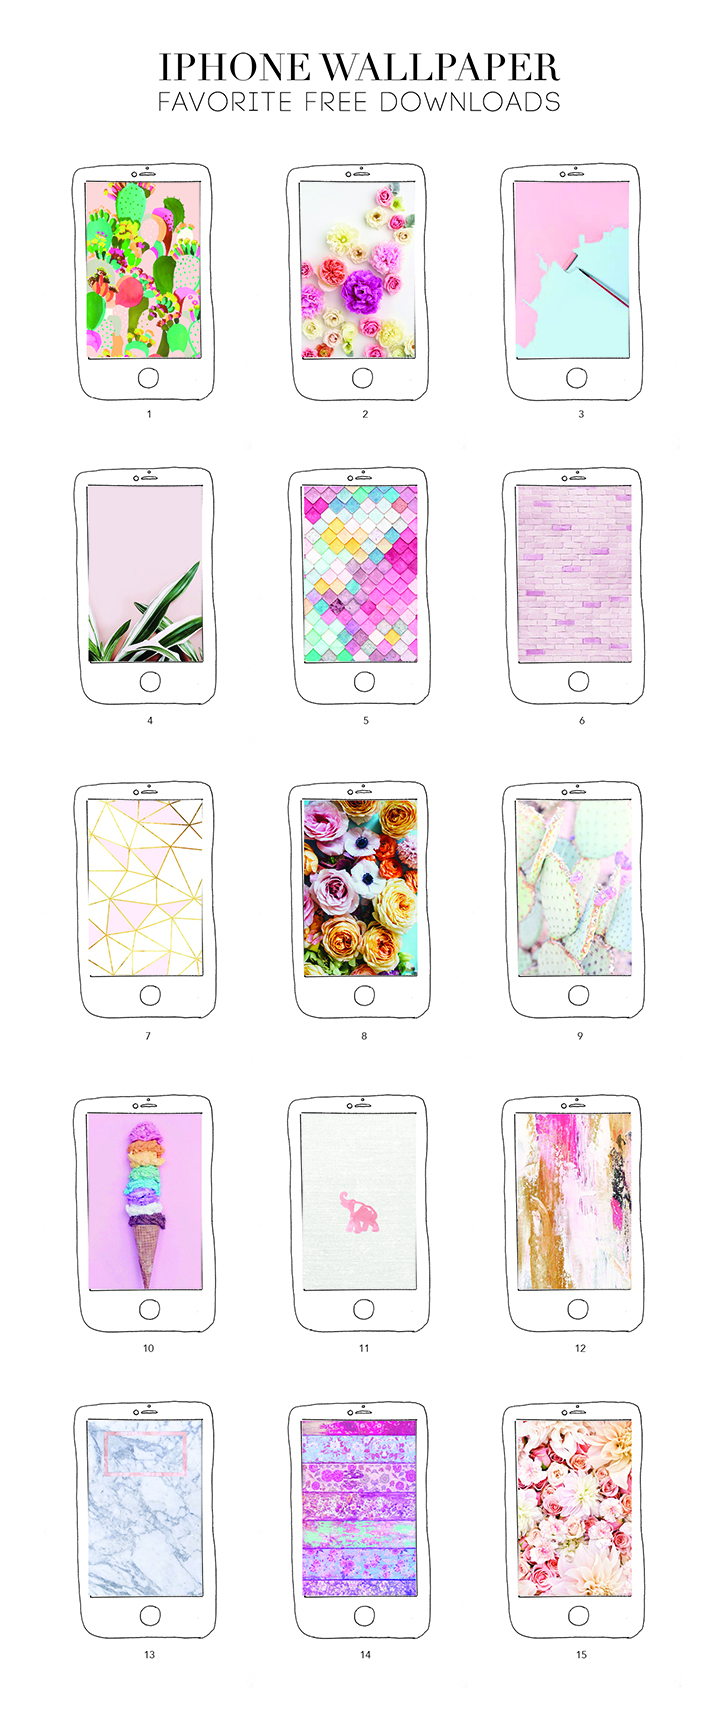 Our 15 Favorite iPhone Wallpaper Free Downloads – the pink edition!